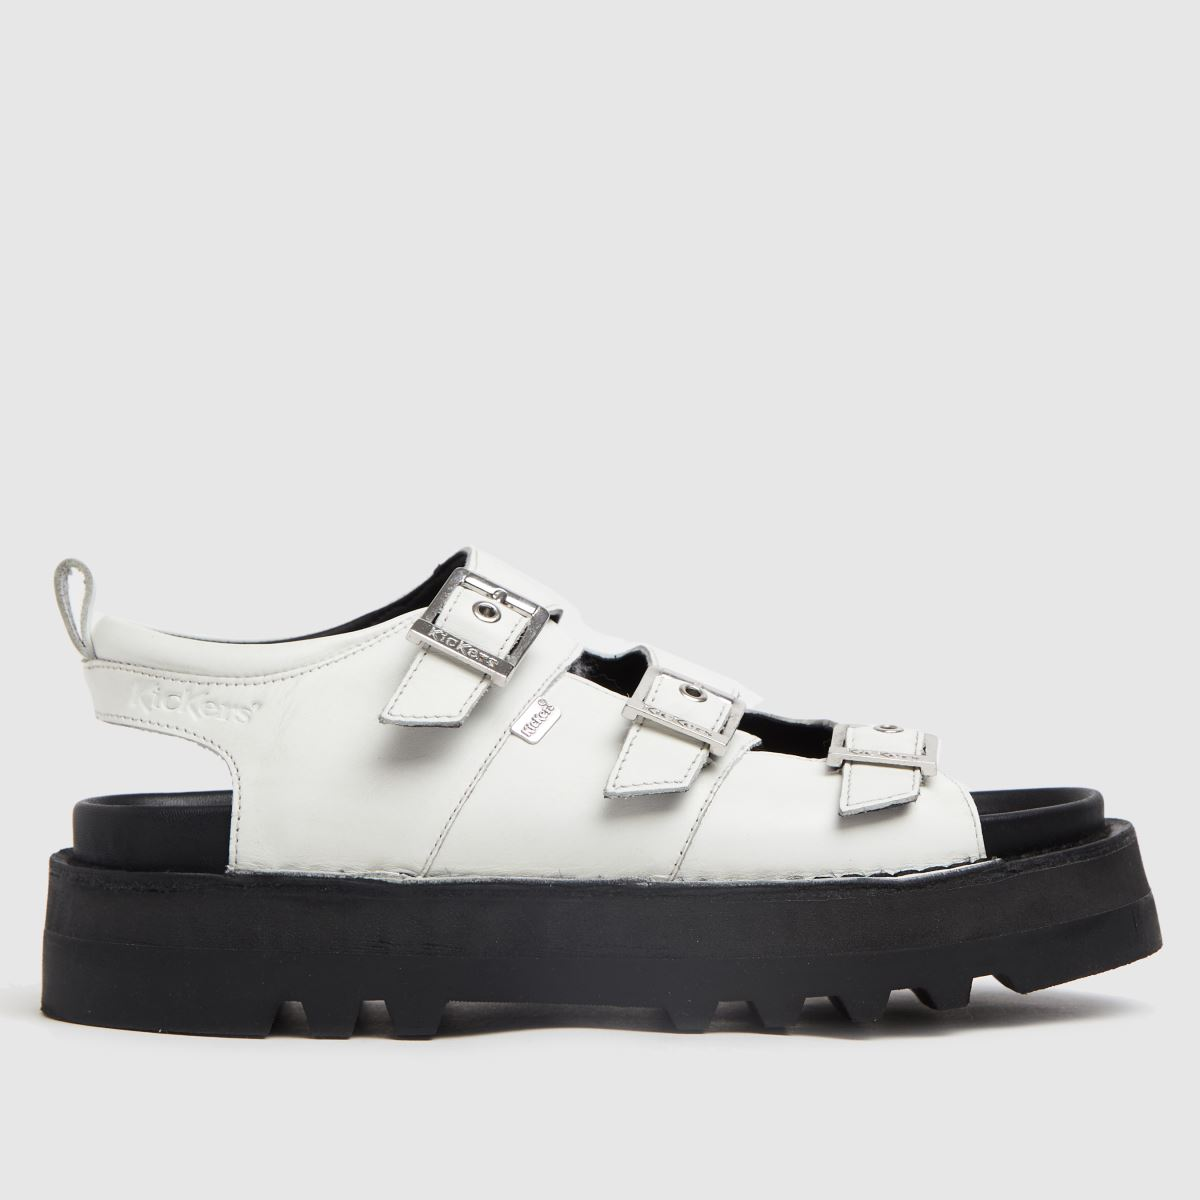 Kickers White Knox Lo Buckle Sandals